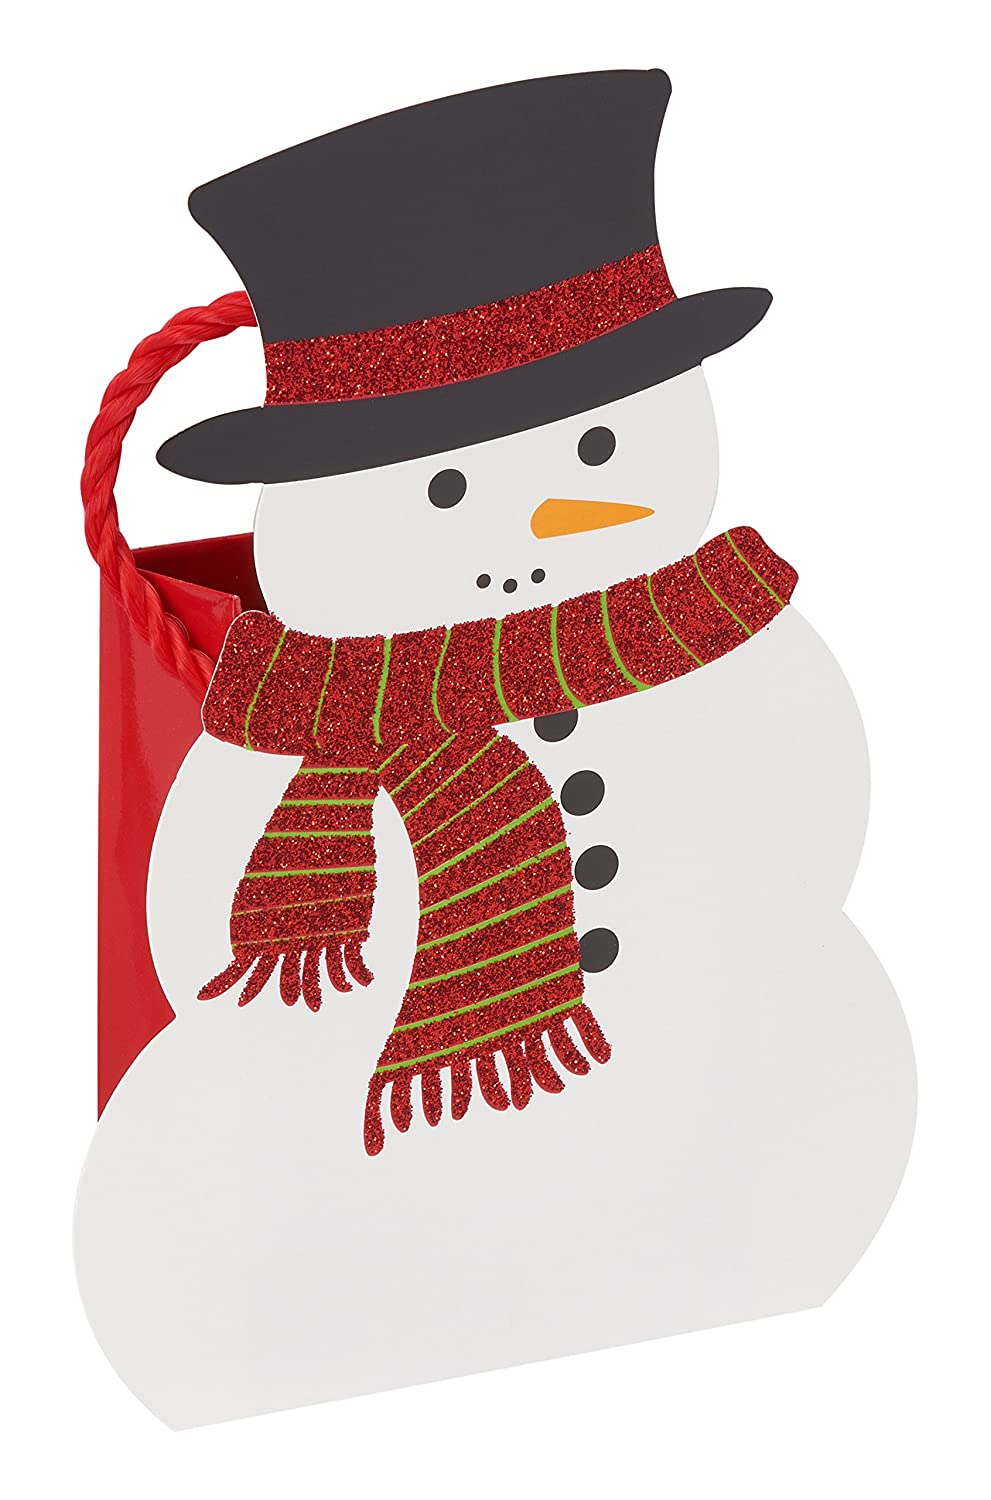 American Greetings Christmas Gift Card Holder, Snowman